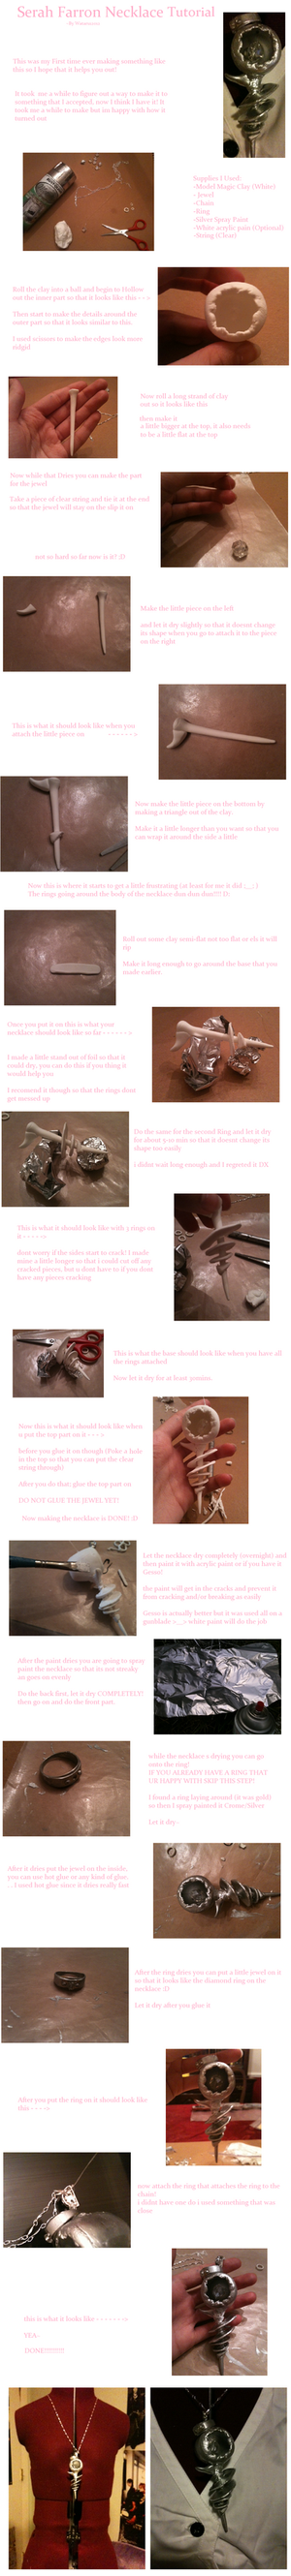 Serah Farron Necklace Tutorial by Wataru12012